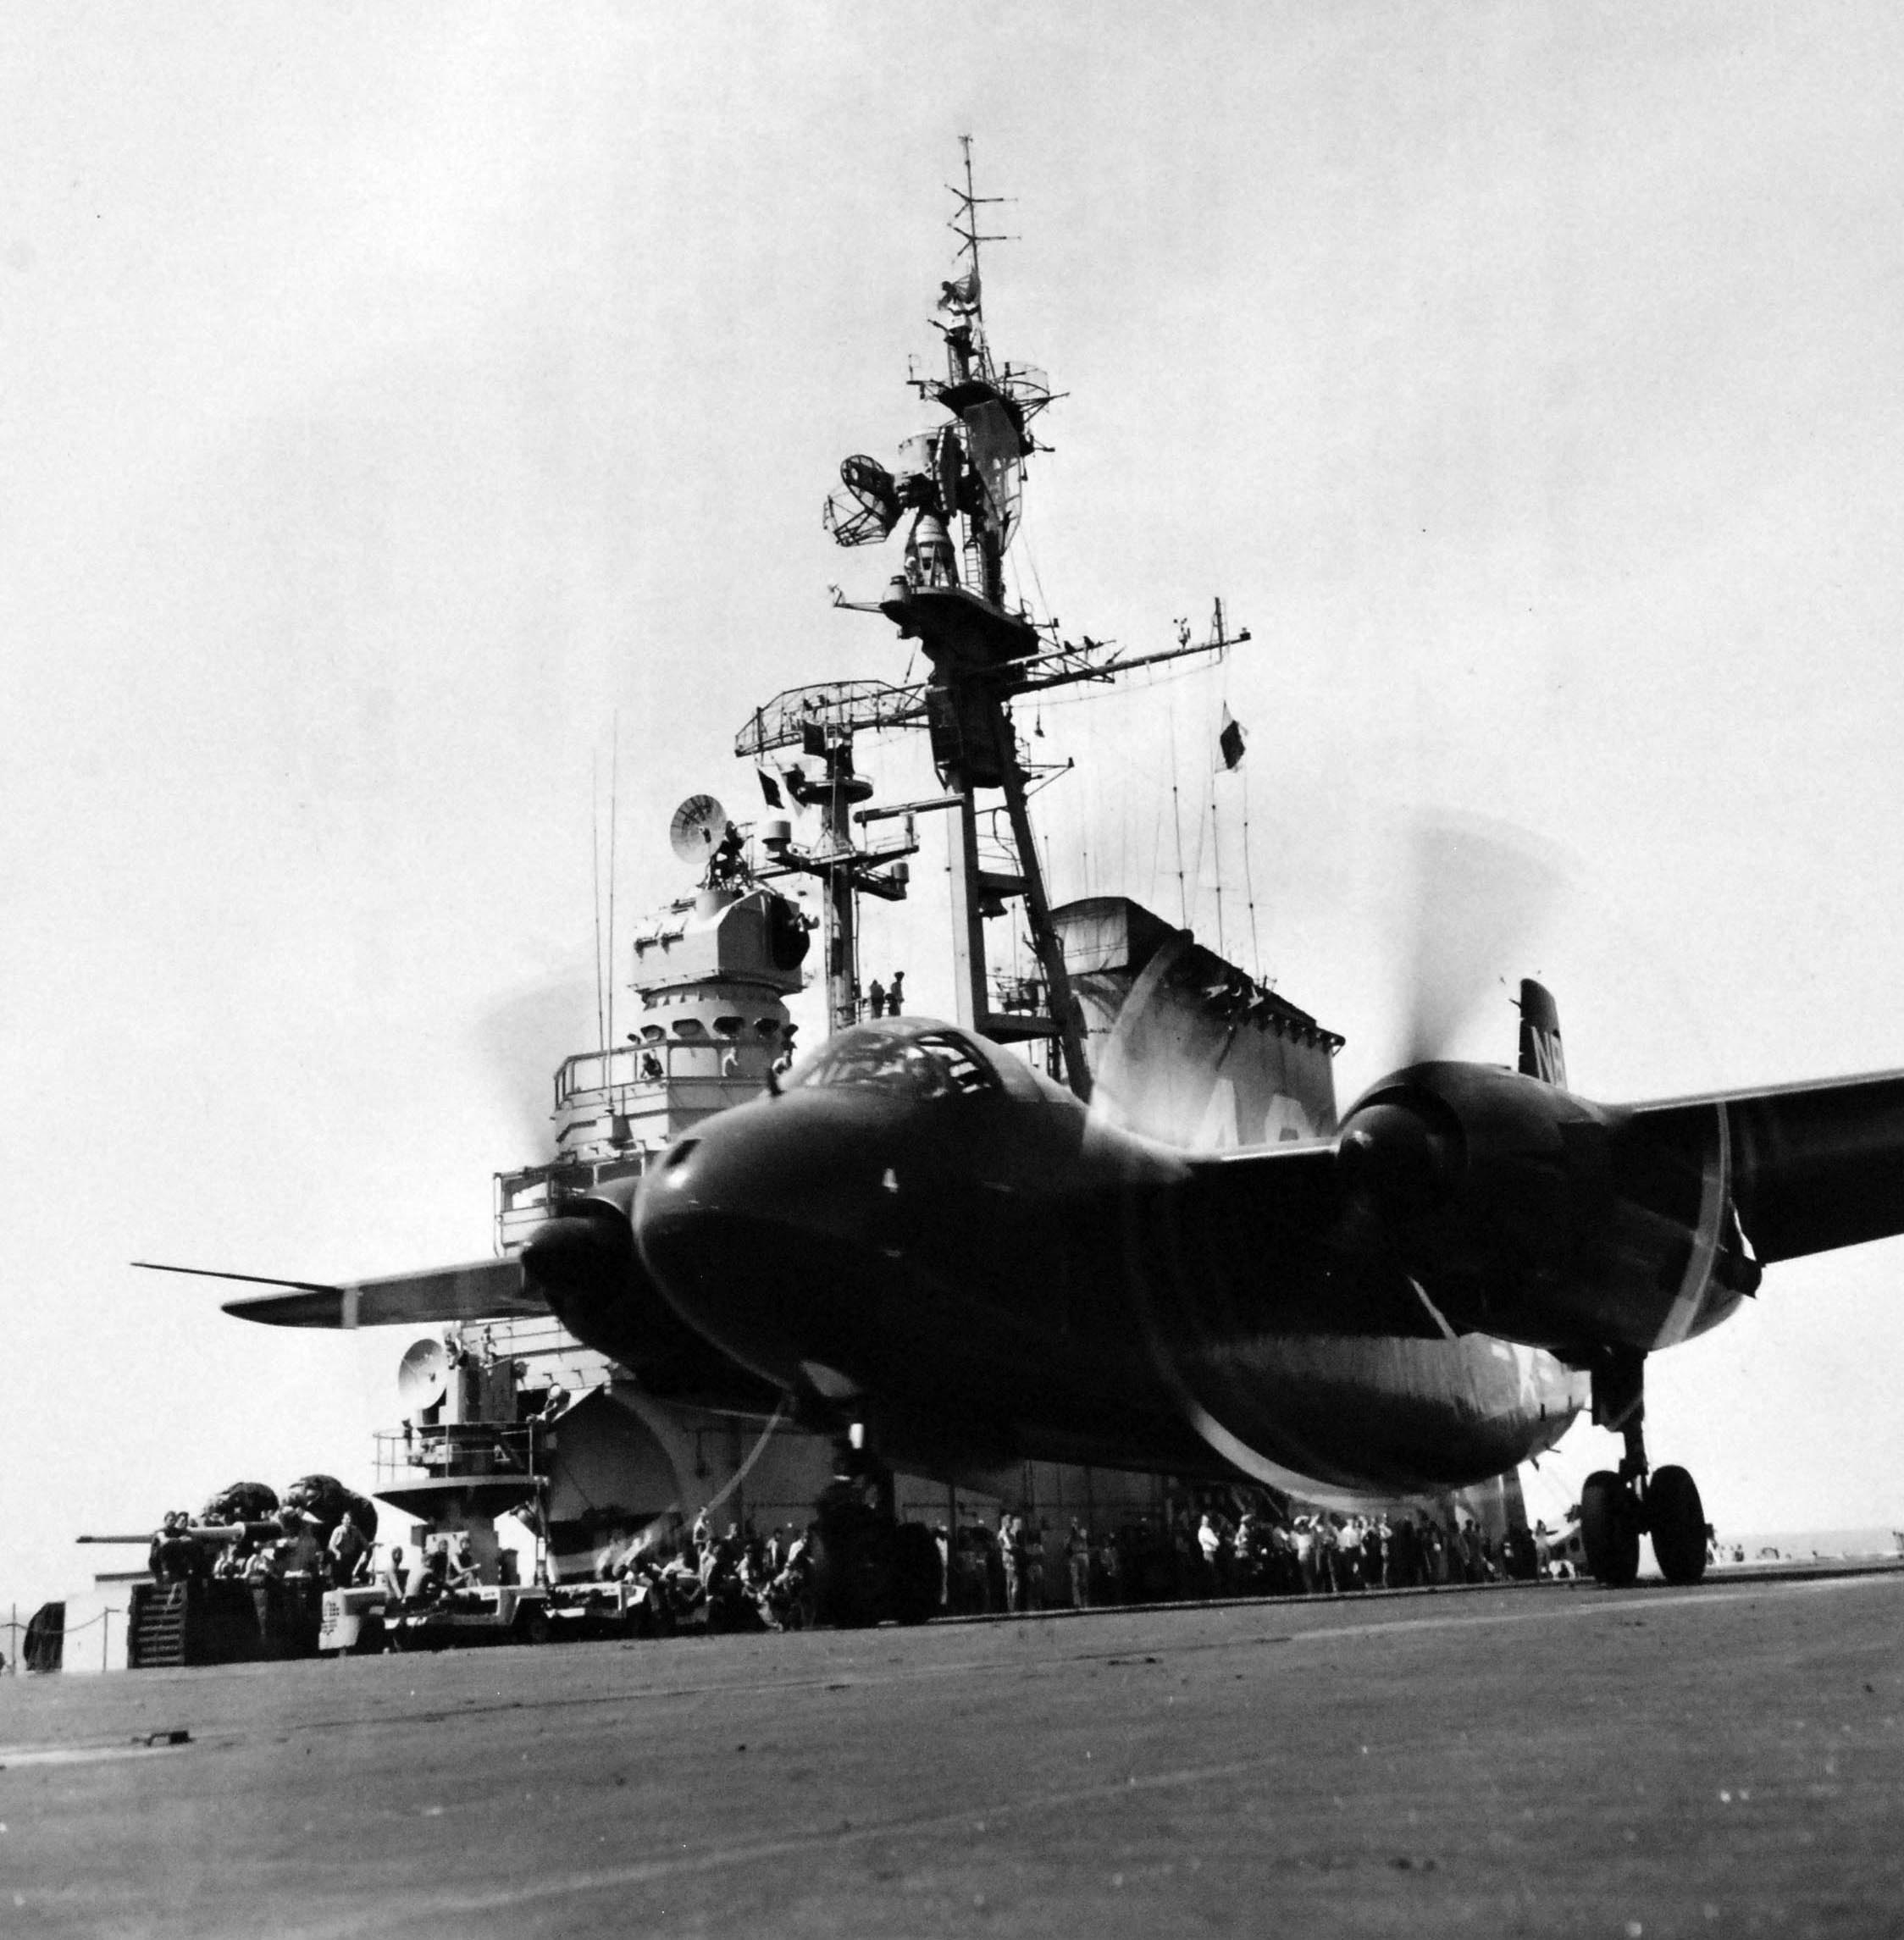 'Hi Resolution Photo Click Here' from the web at 'http://www.usscoralsea.net/images/cva43AJ-1Savage1954takeoff2.jpg'